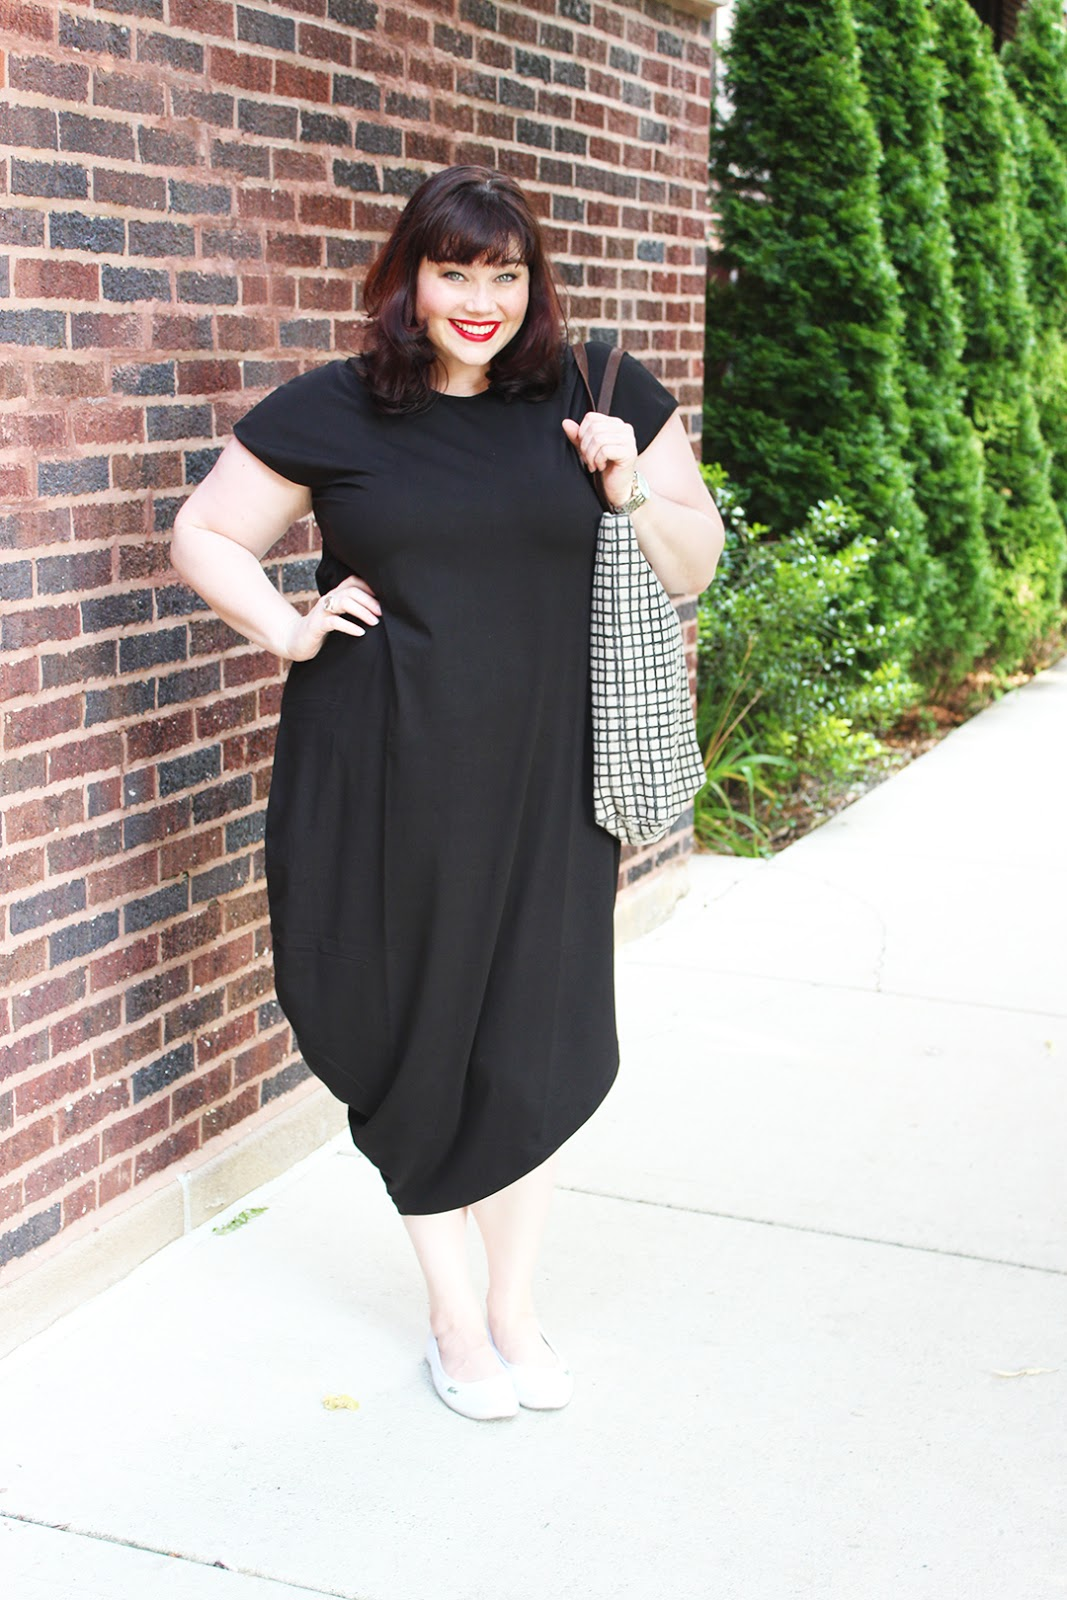 dcf41753aba Plus Size Blogger Amber from Style Plus Curves wearing the Universal  Standard Geneva Dress in Black